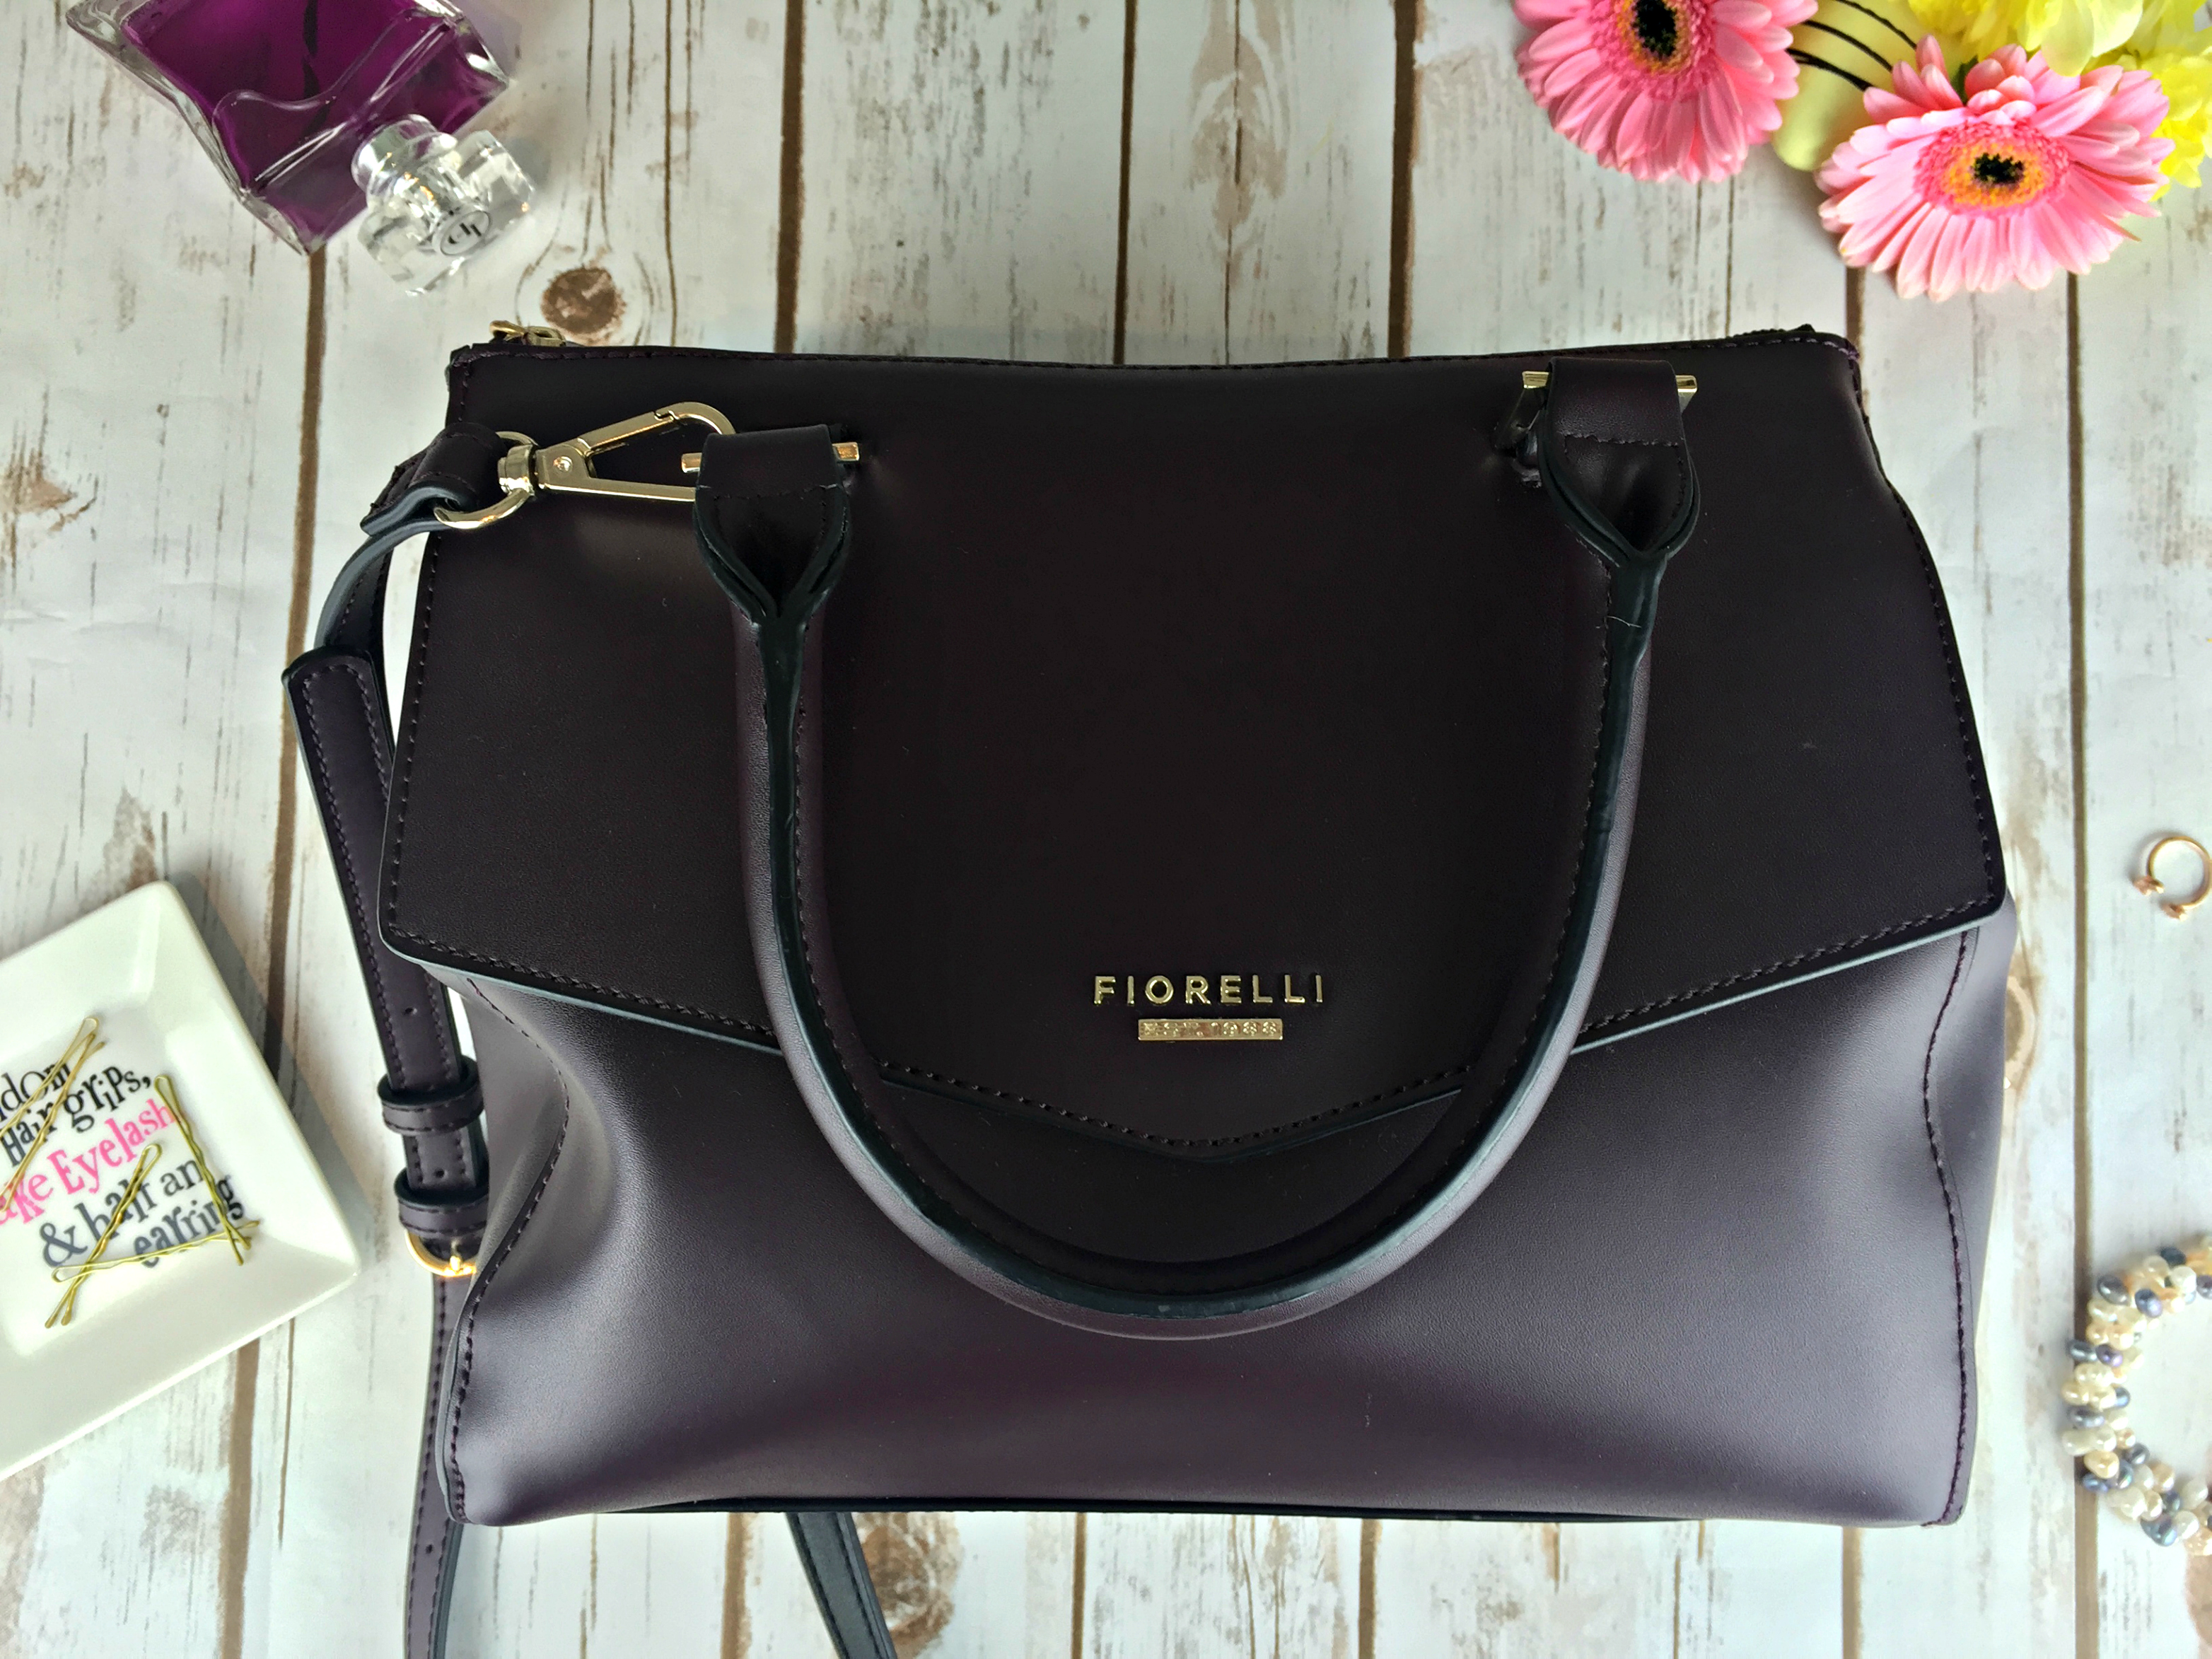 455a57a6b82b What's in my Bag & Fiorelli Mia Grab Bag Review - With love from Lou